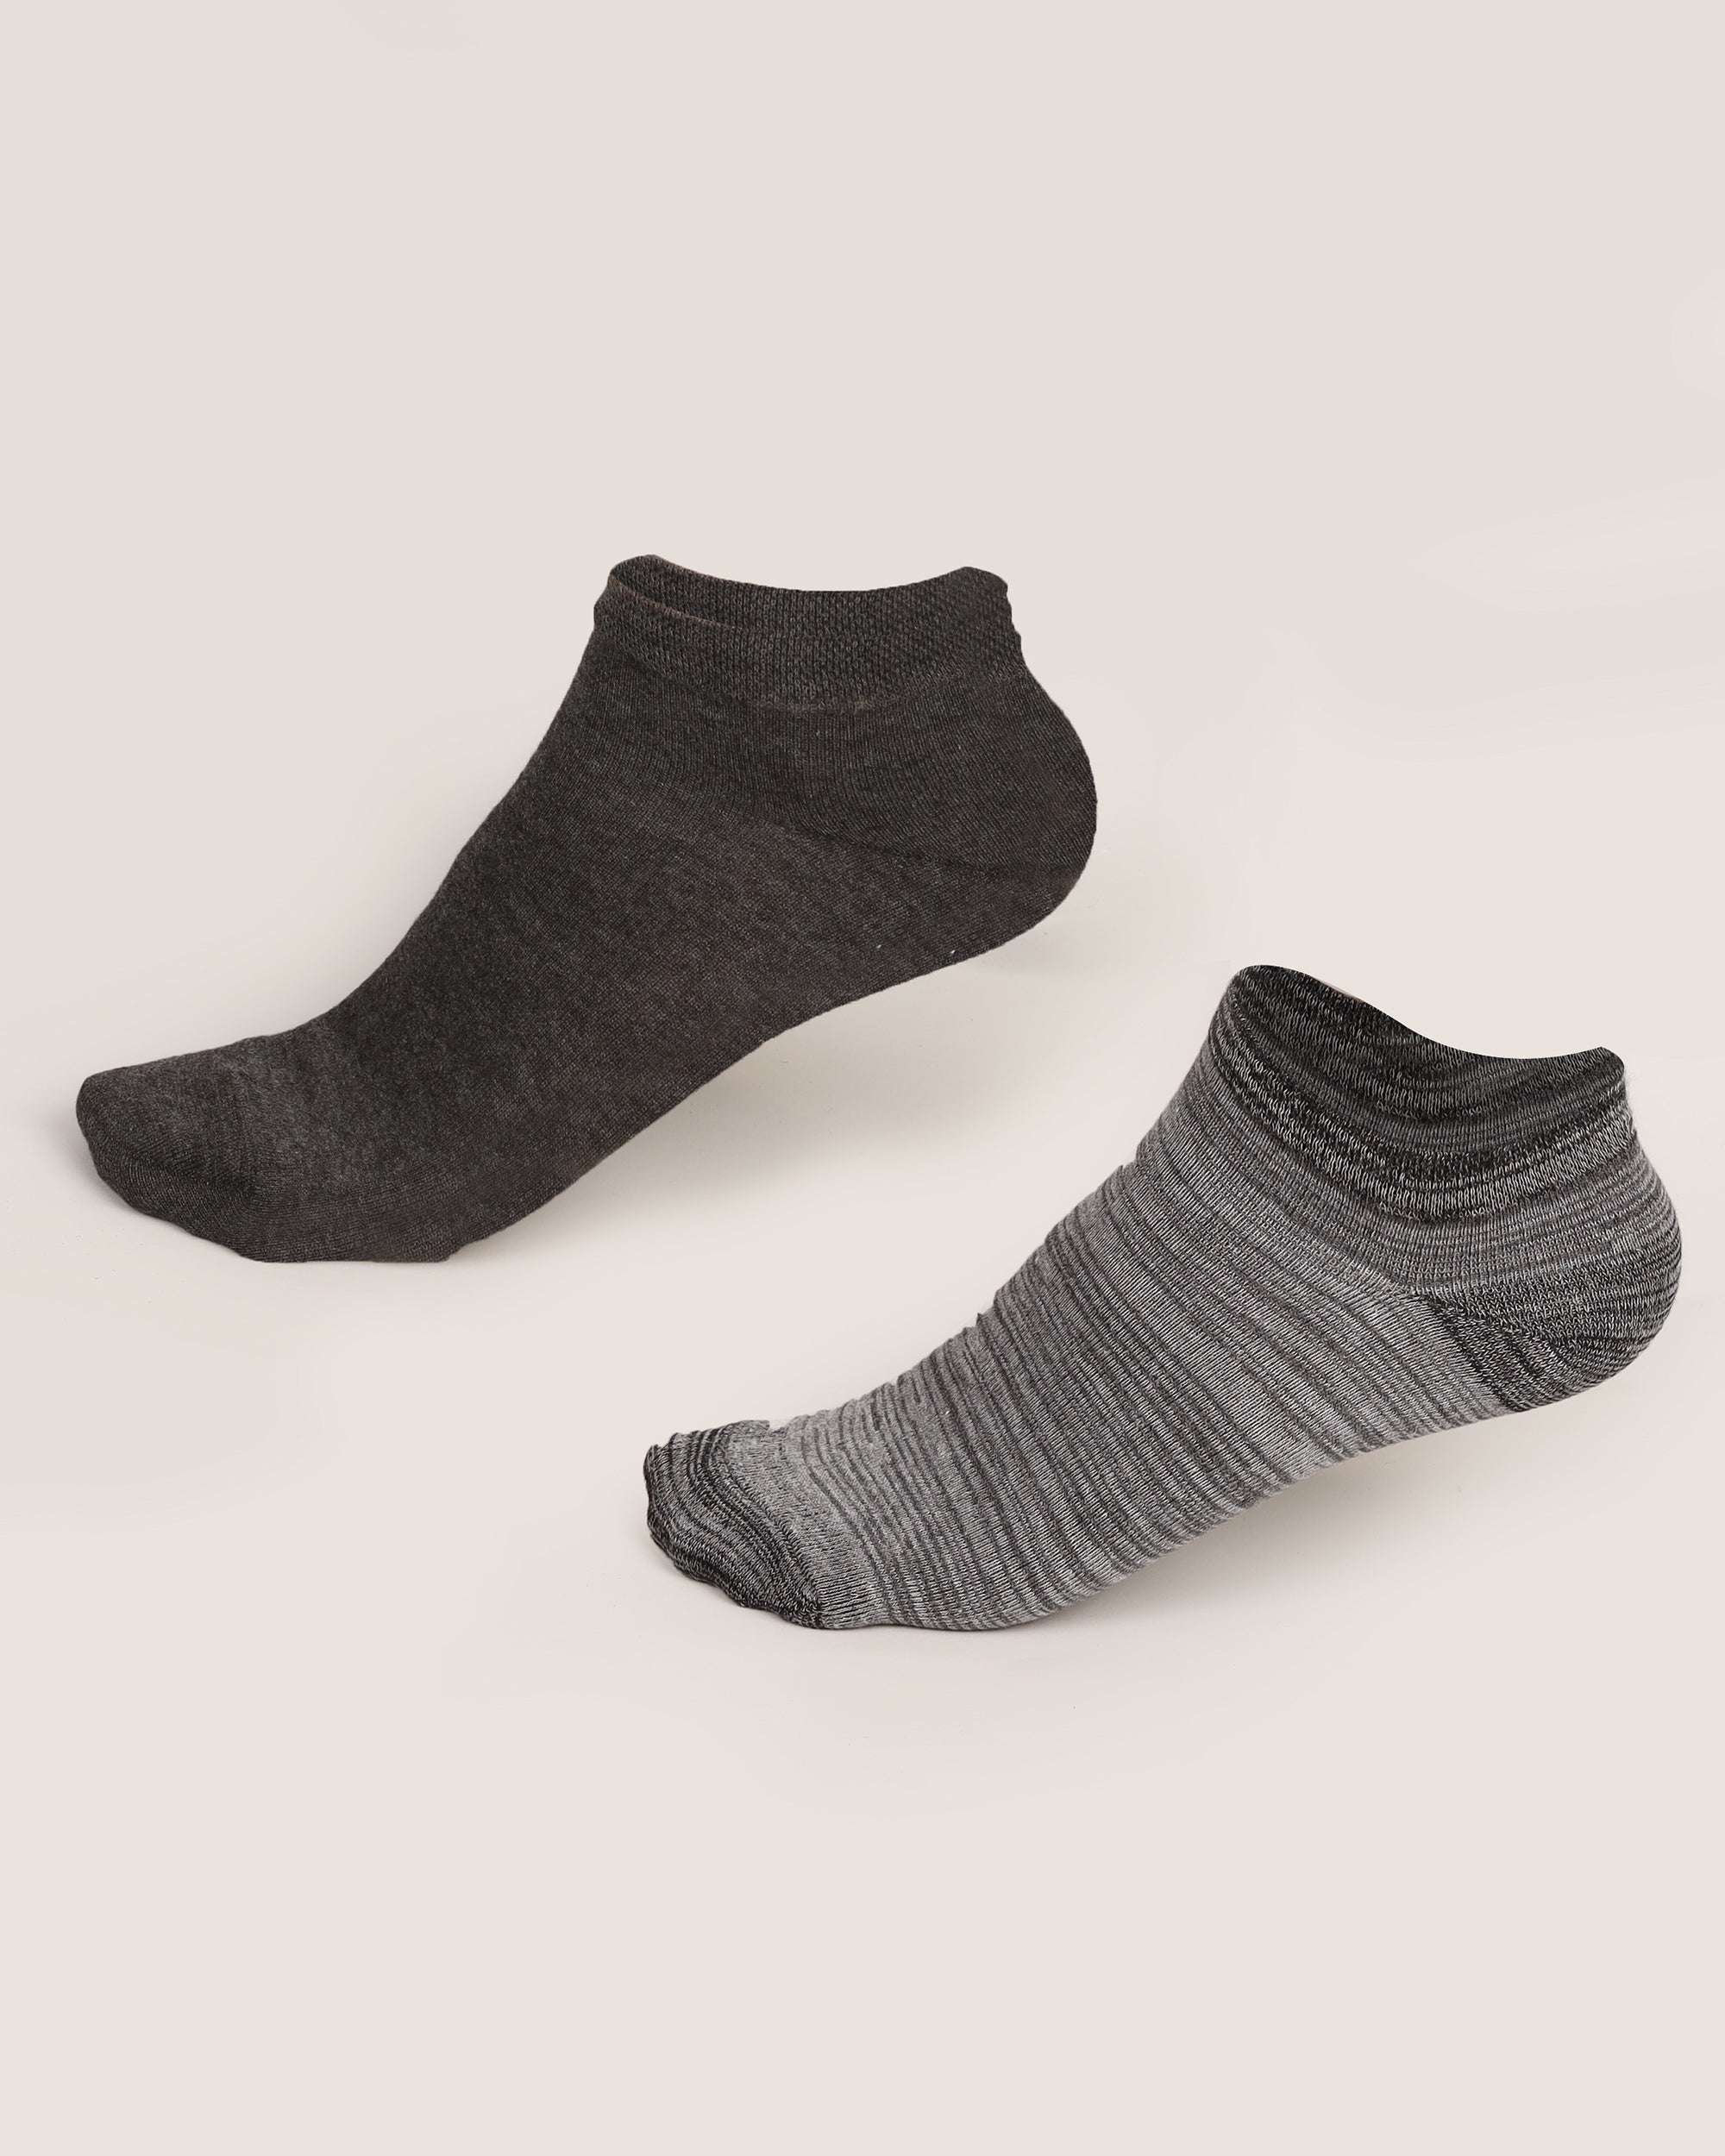 TEXTURED ANKLE SOCKS PACK OF 2